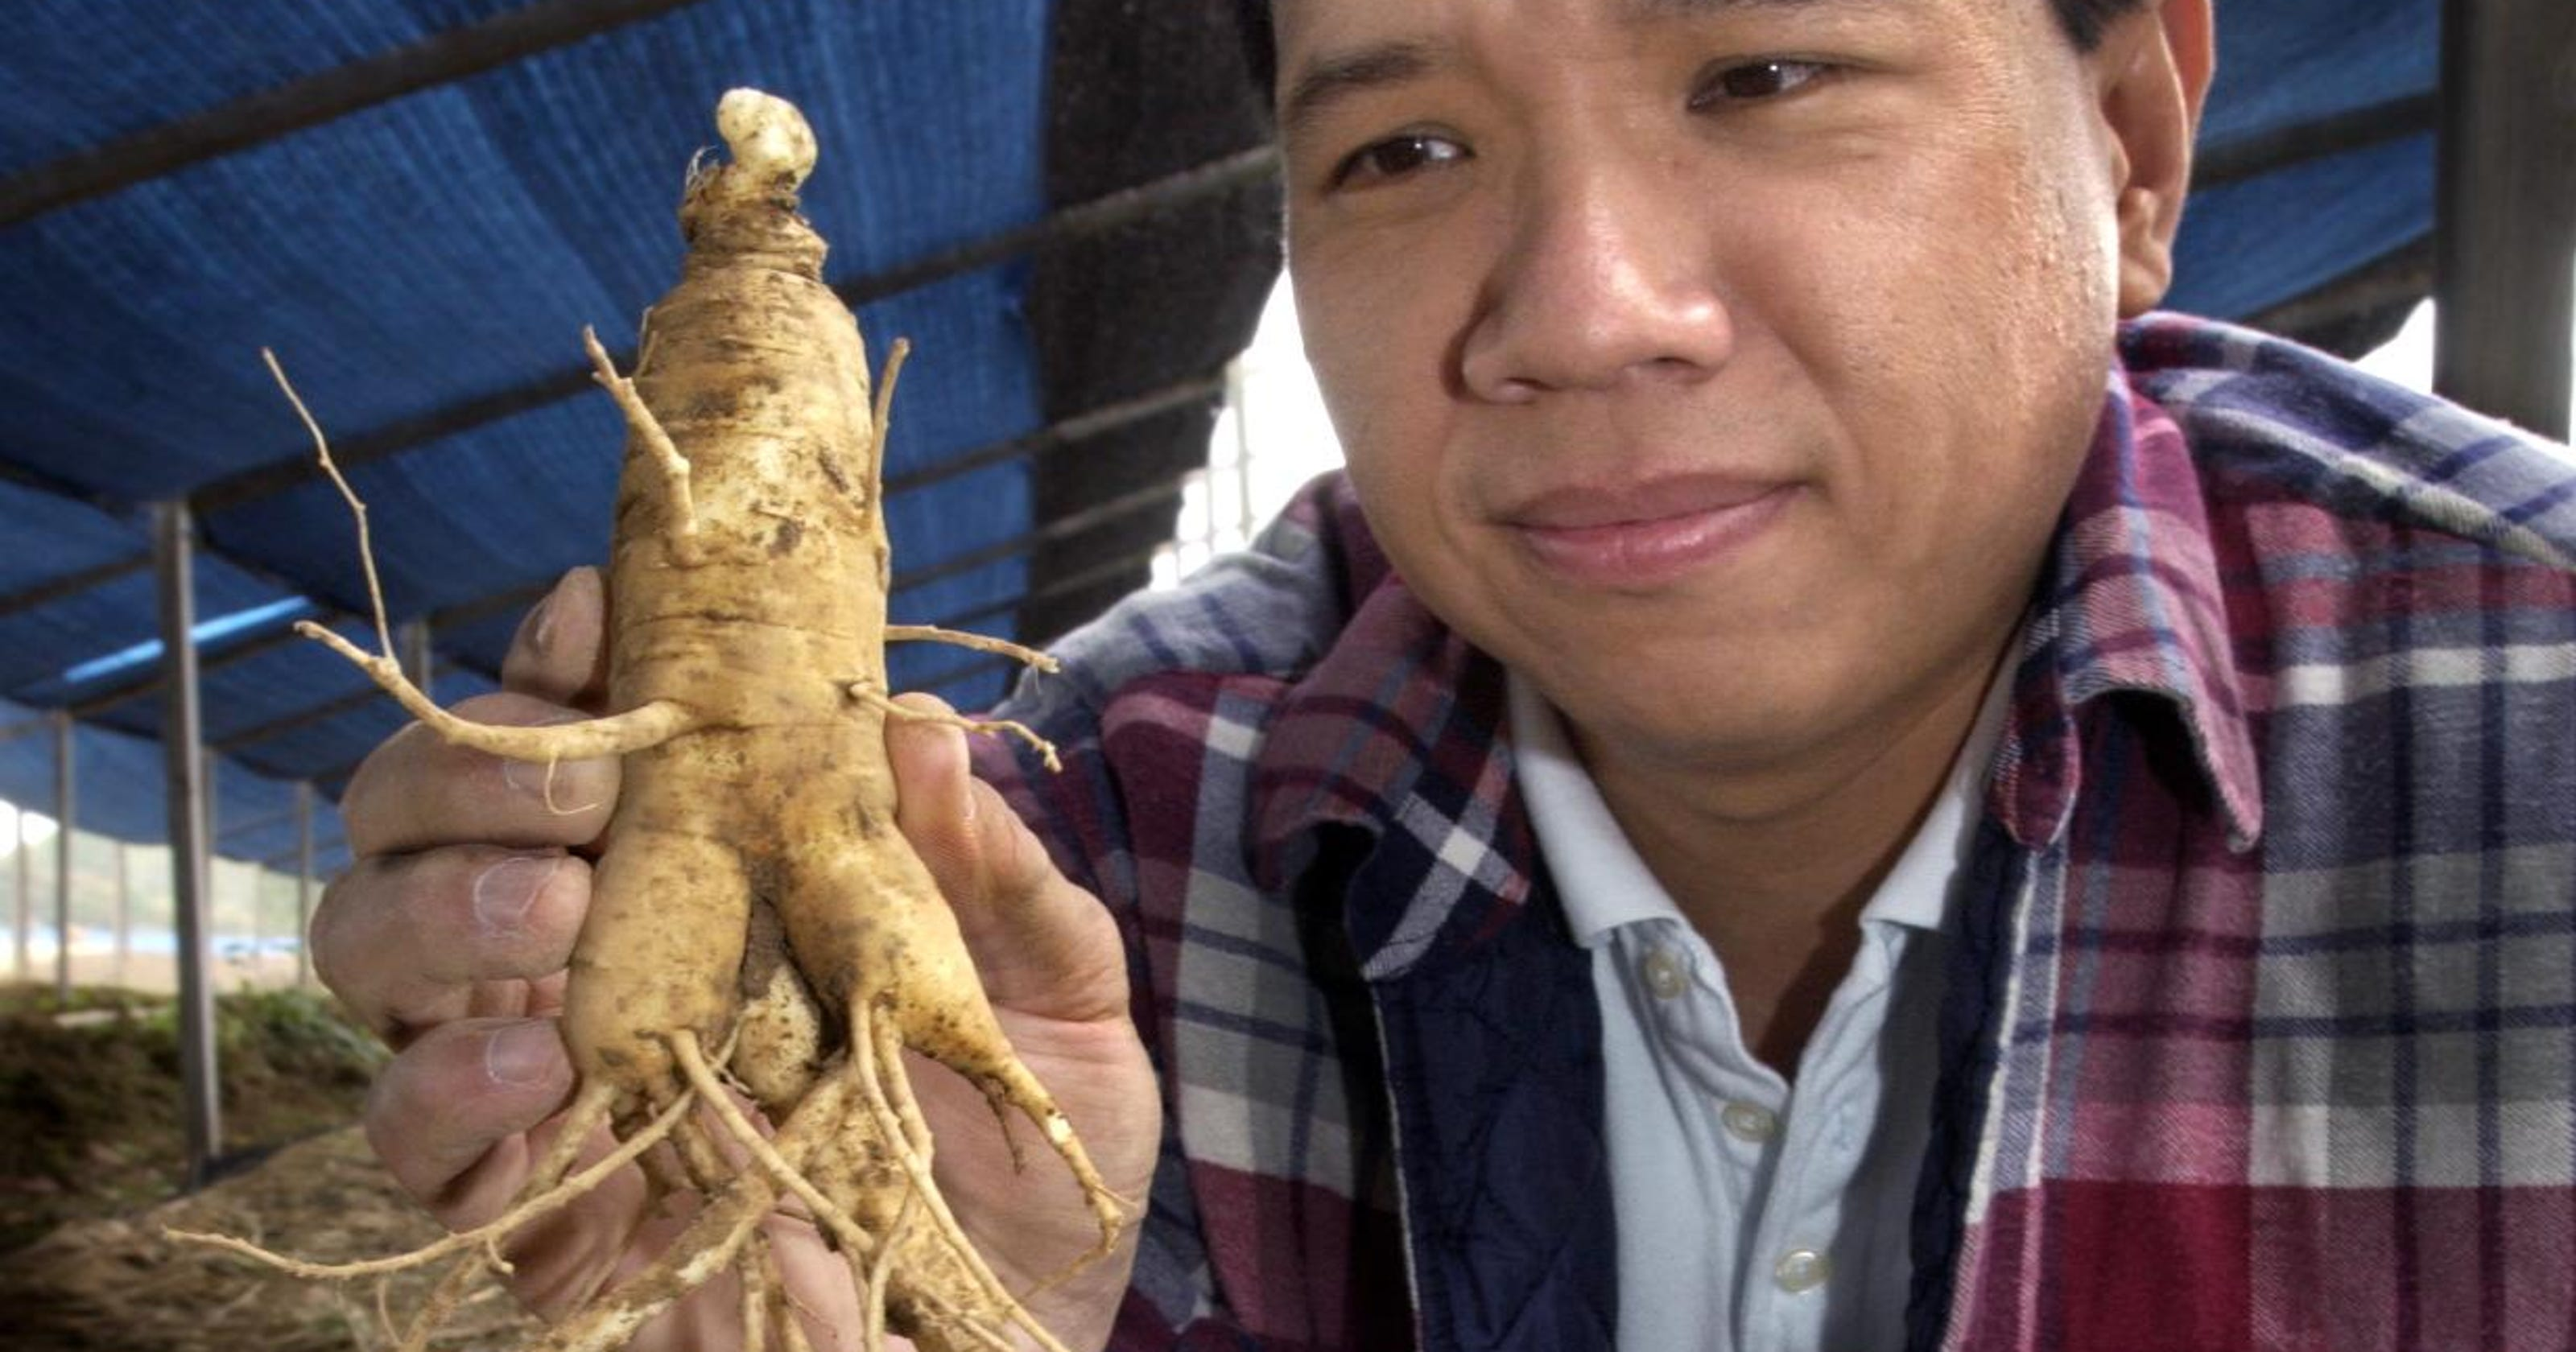 Ginseng: A lucrative, risky, sometimes illegal Indiana